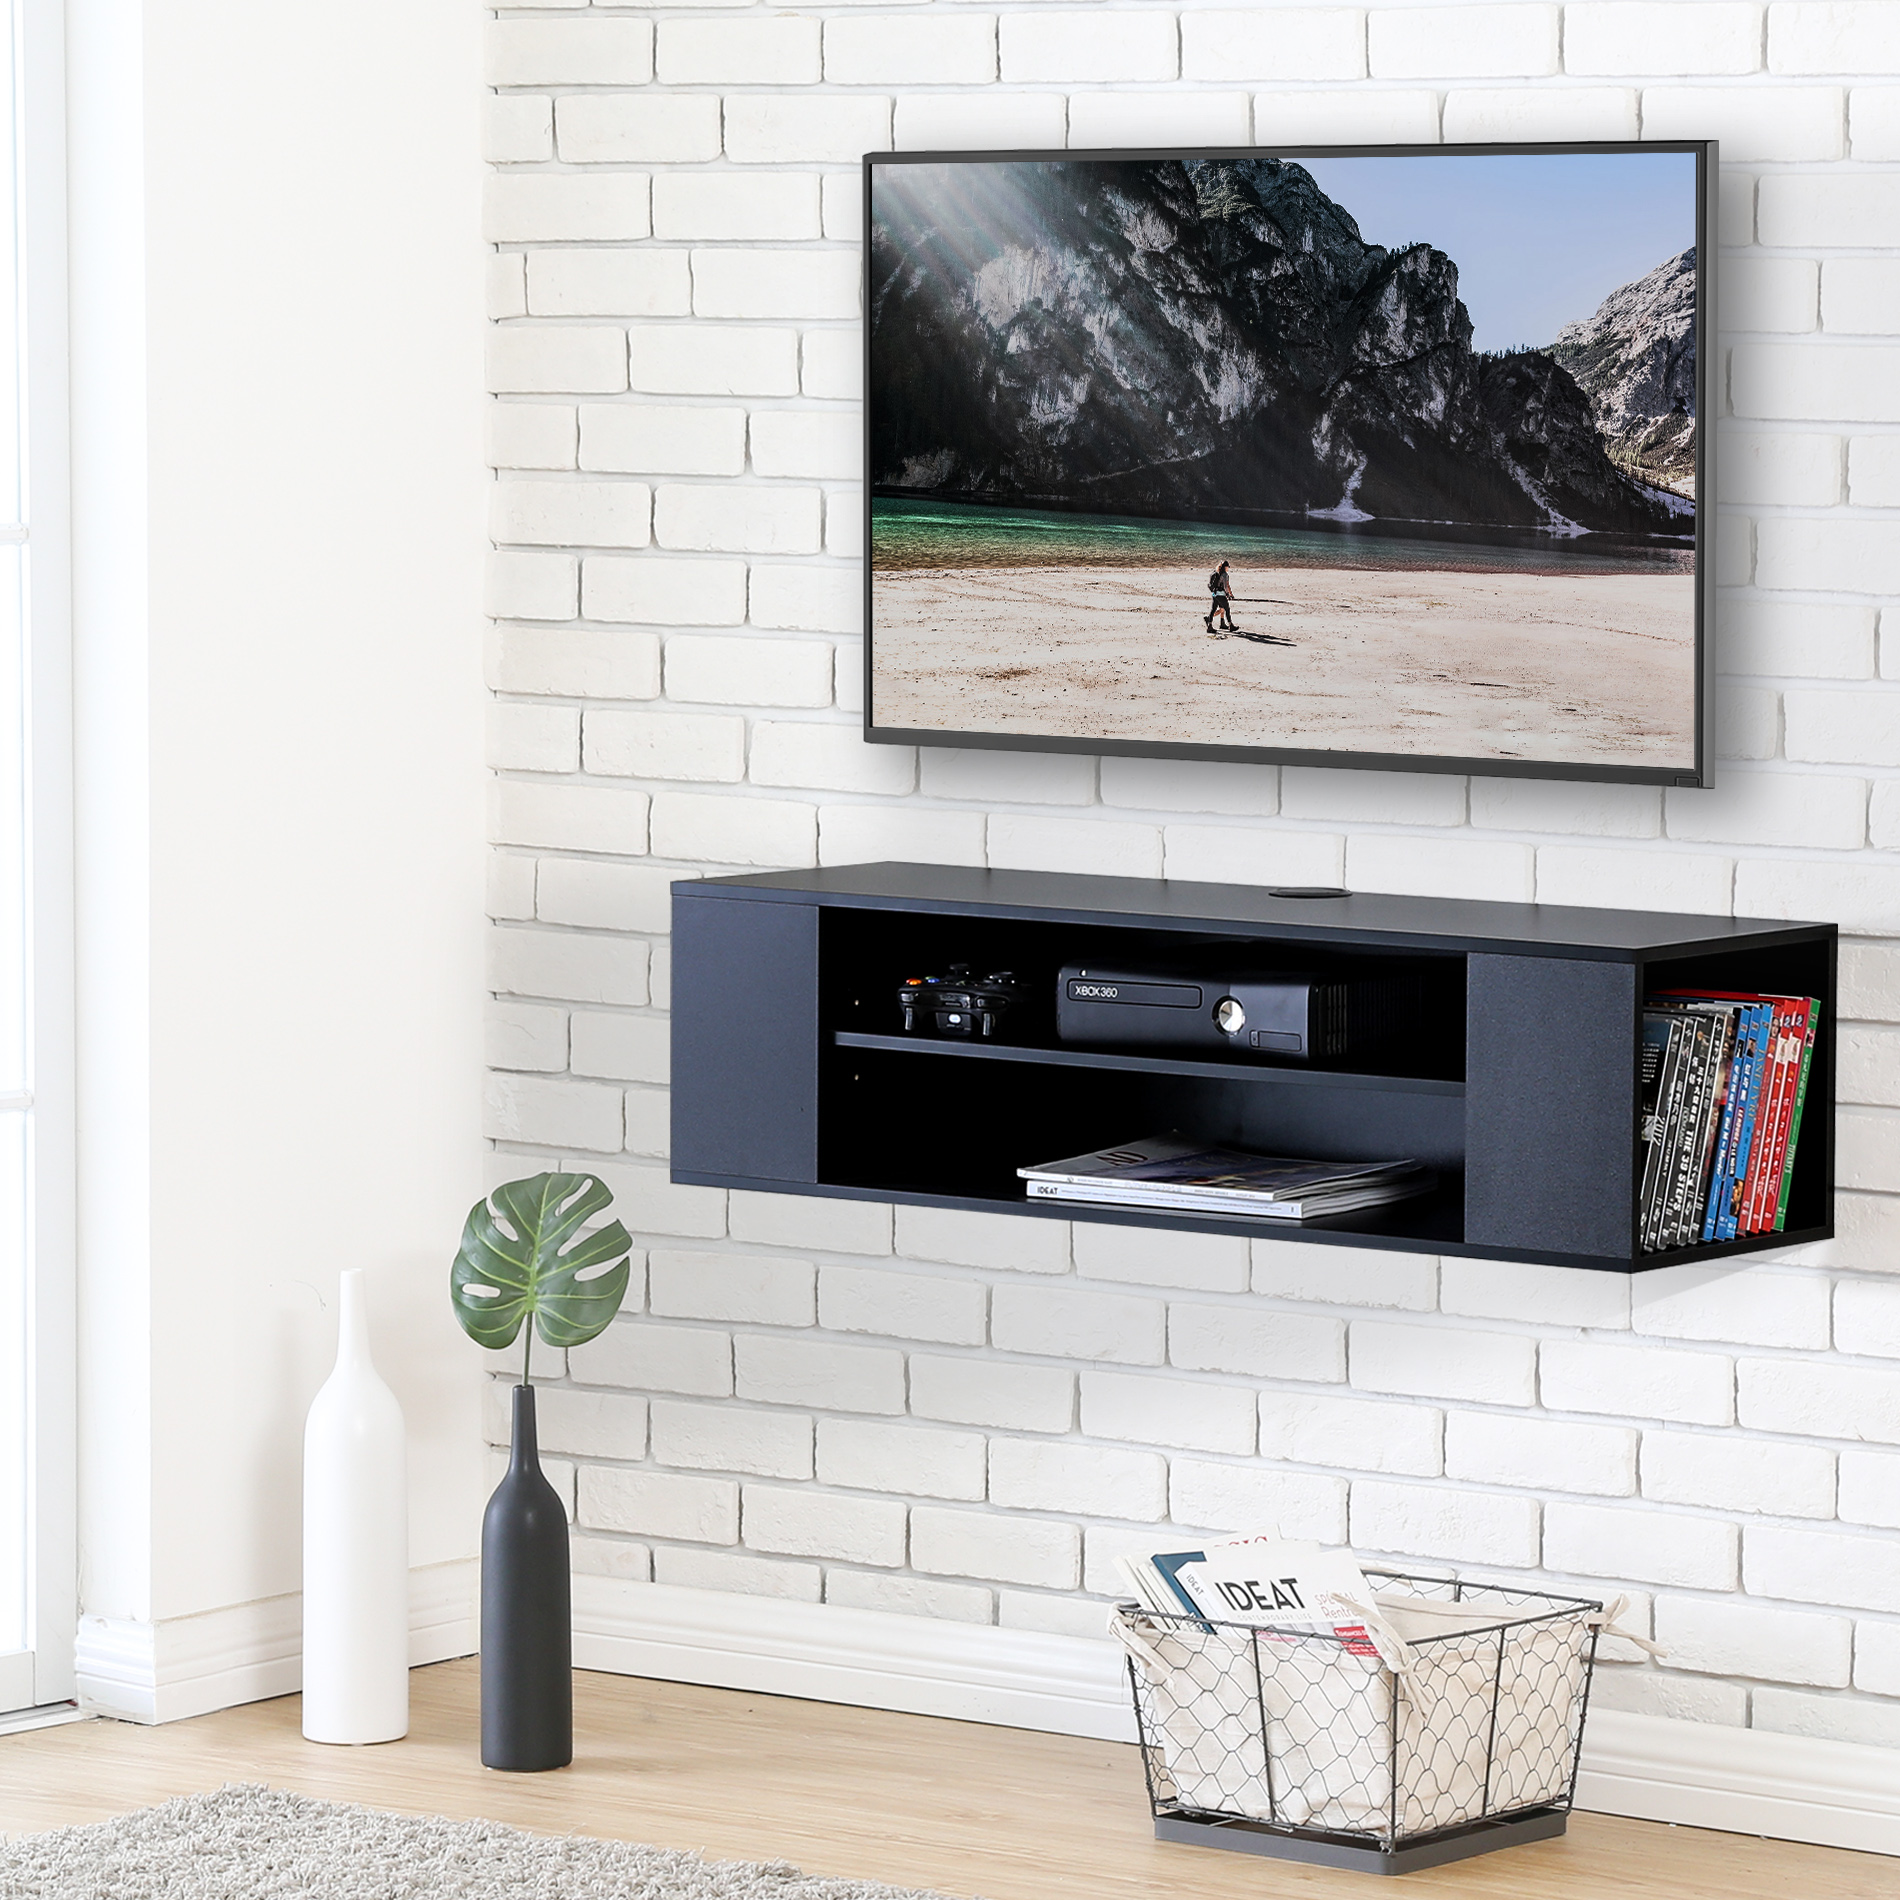 FITUEYES Wall Mounted Console Audio/Video Tv Stand for LG /Apple/ vizio/ Sumsung/Sony TV DS210002WB